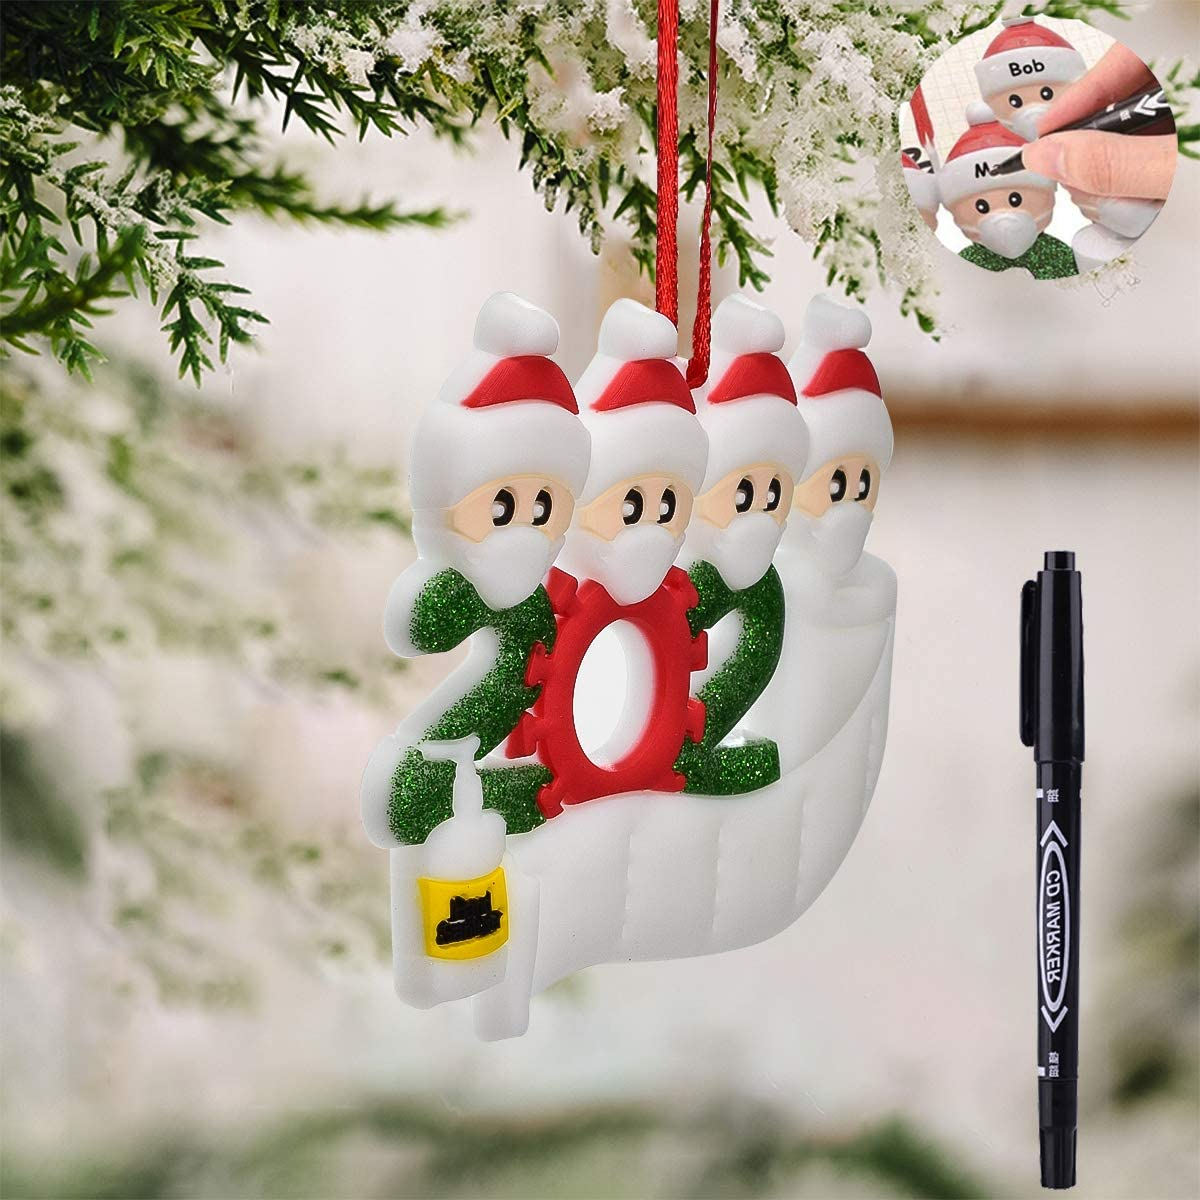 Kunray Christmas Ornament Kit with Mask, 2020 Quarantine Survivor Family Creative Gift for Family,Personalized Name Christmas Decorations Ornament Kit, w/Pen (Family, Family-4)